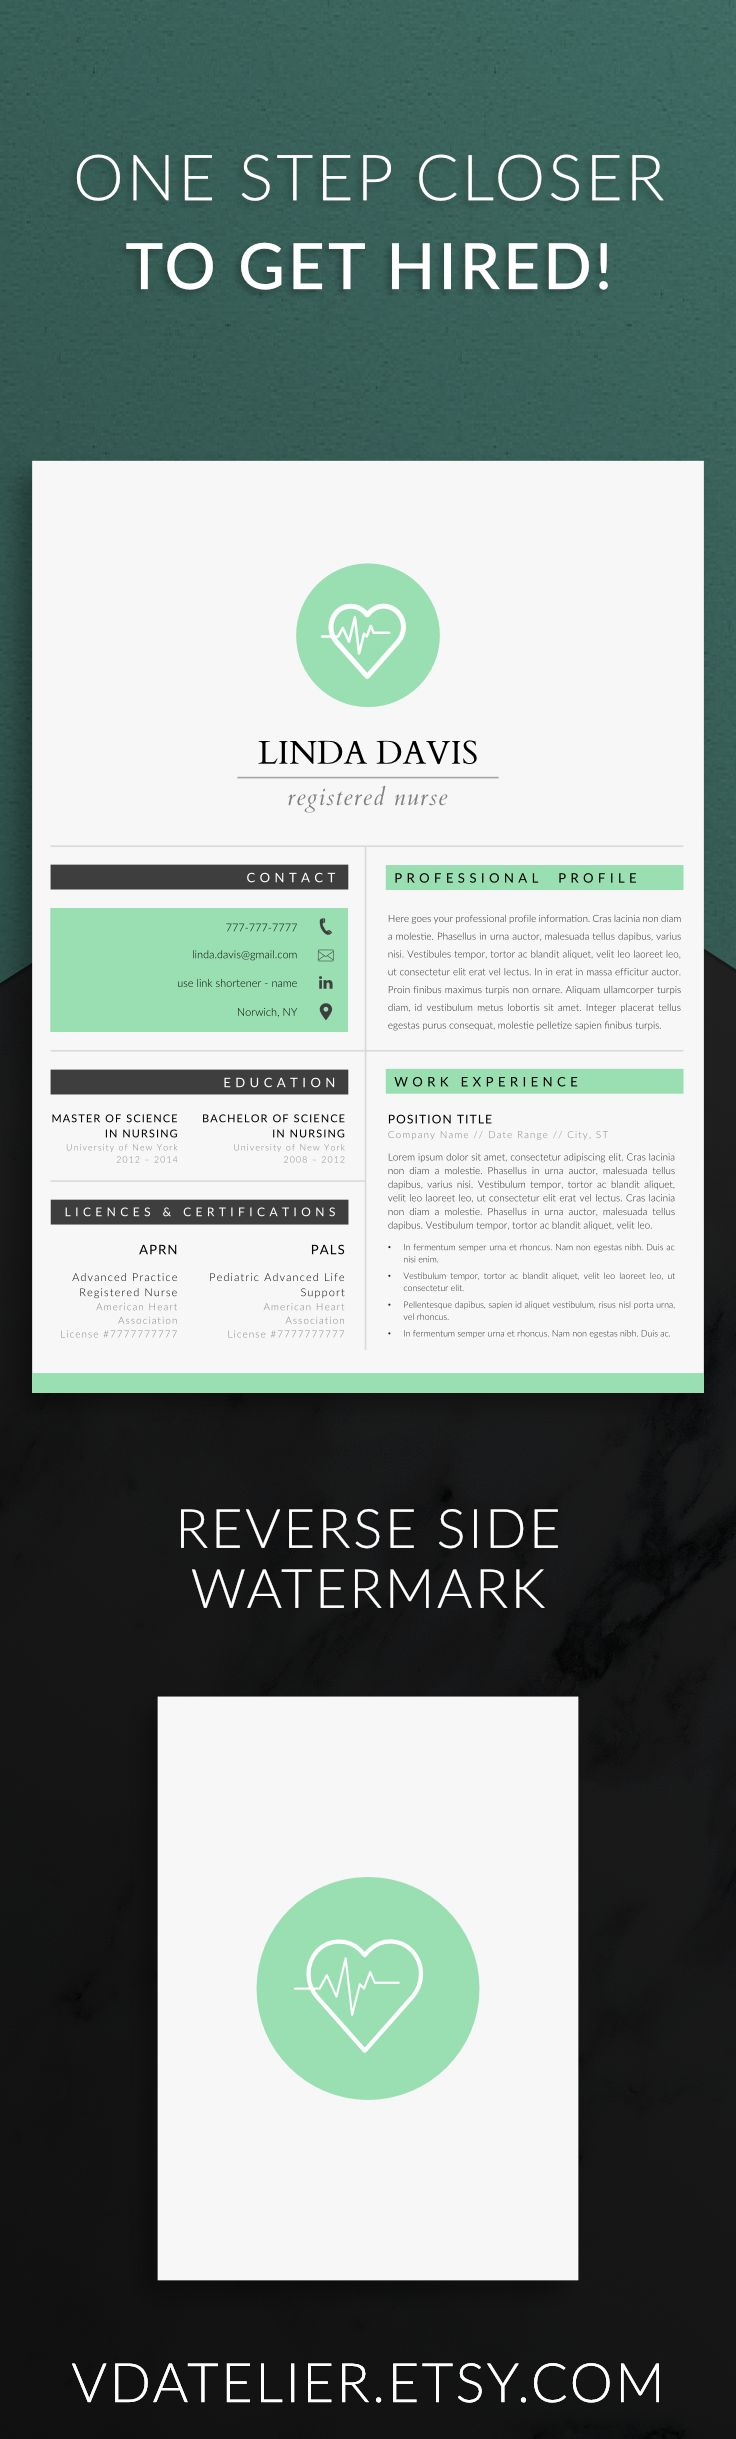 Best Nurse Resume Templates Images On   Resume